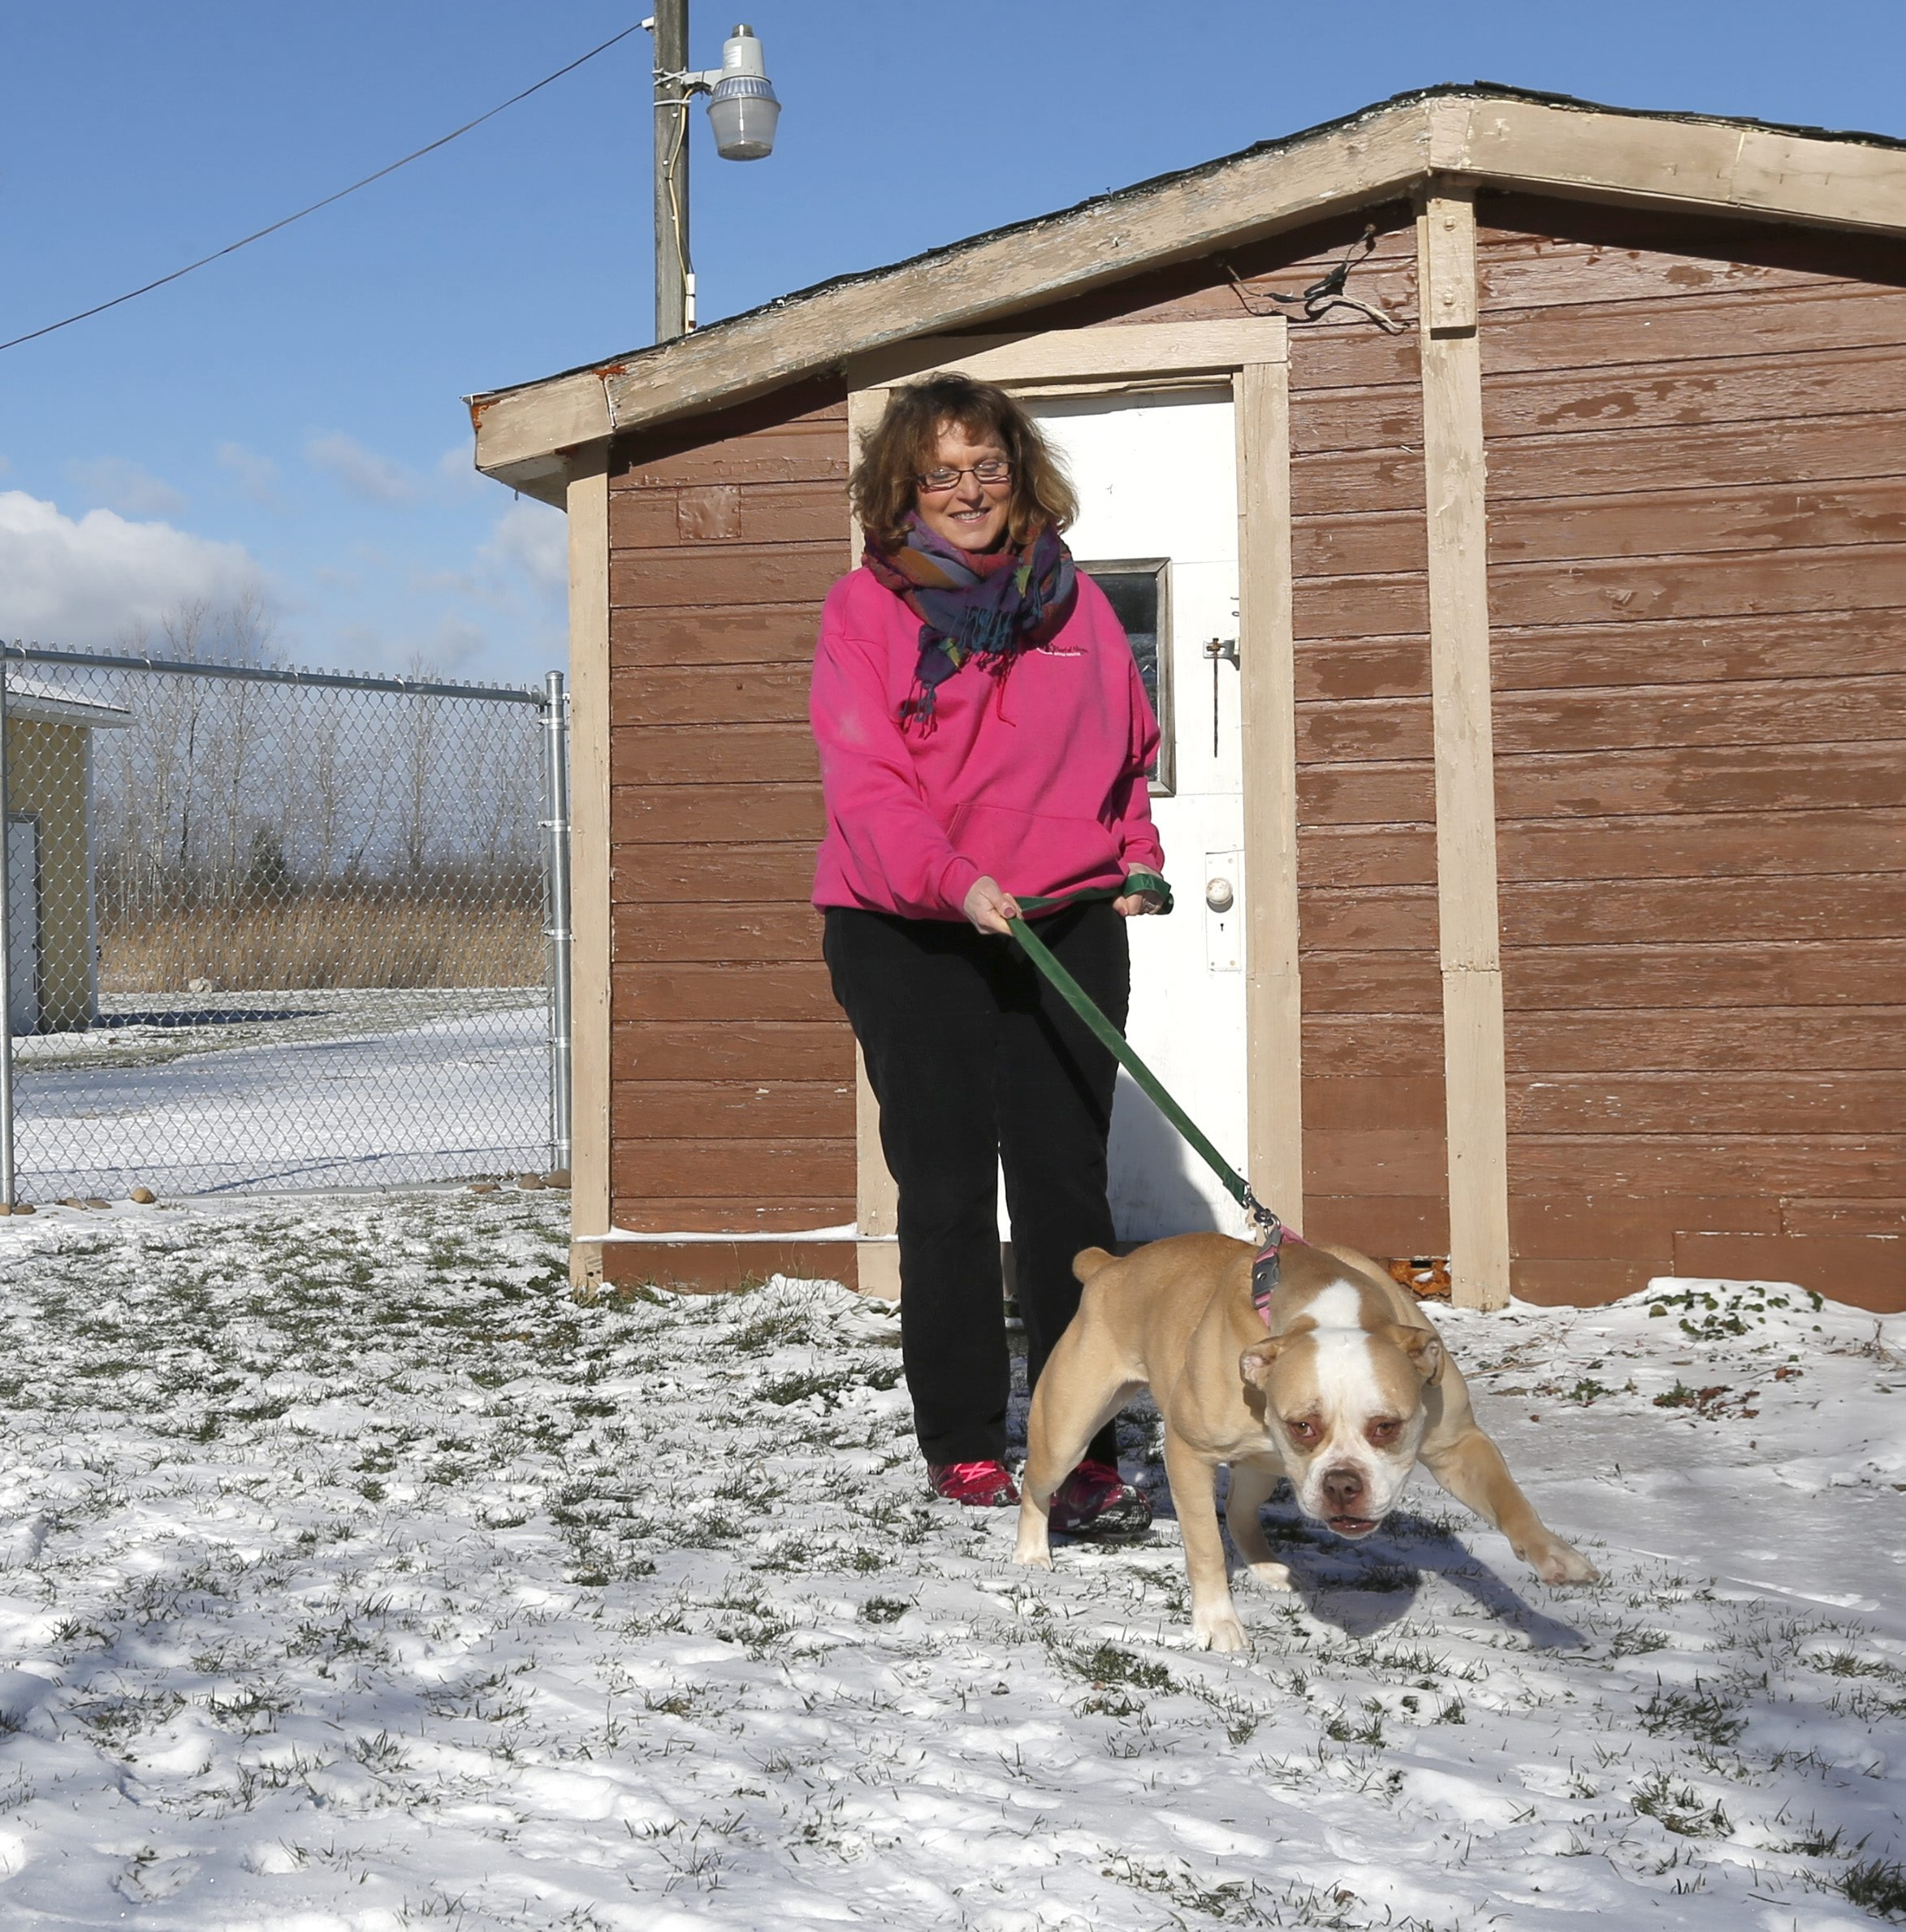 Linda van Harssel, secretary of the board of directors of Heart of Niagara Animal Rescue, walks Clarabelle, a 5-year-old rescued bulldog, at the organization's new home in the Lockport-Newfane area.